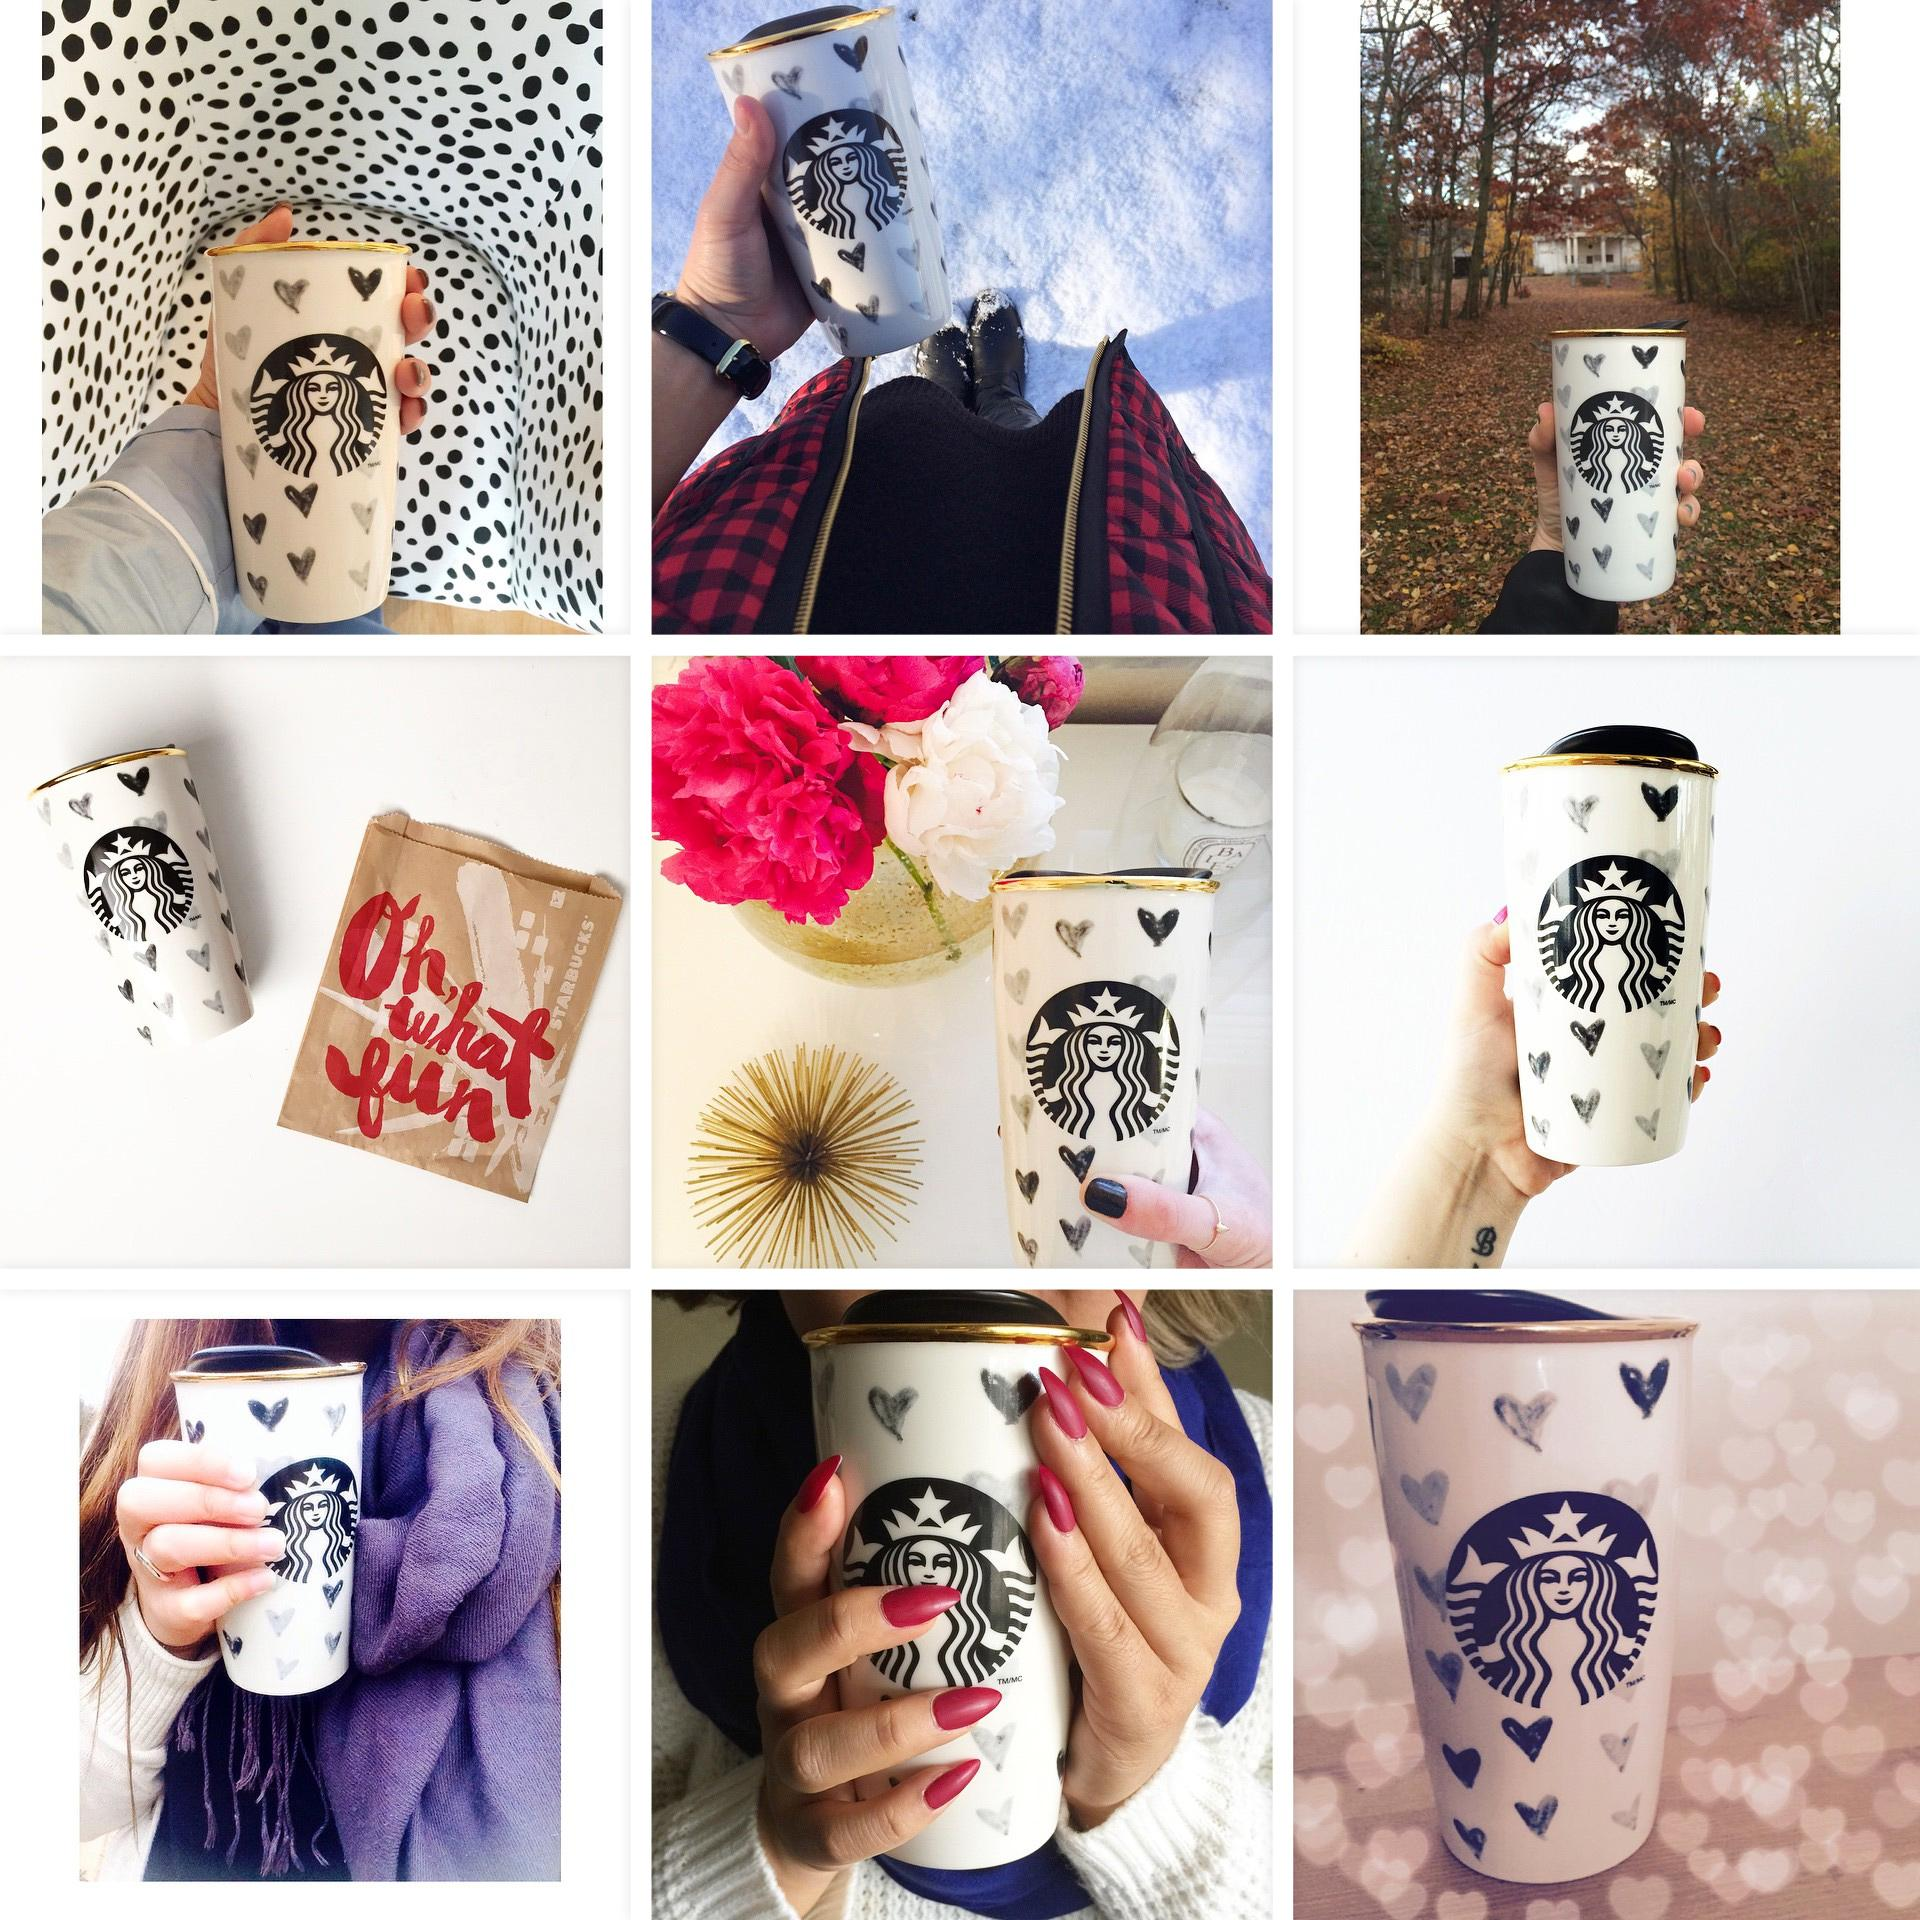 So much to love #mugmonday #dotcollection #gotmine 💚 http://t.co/ZpckxX2TAX